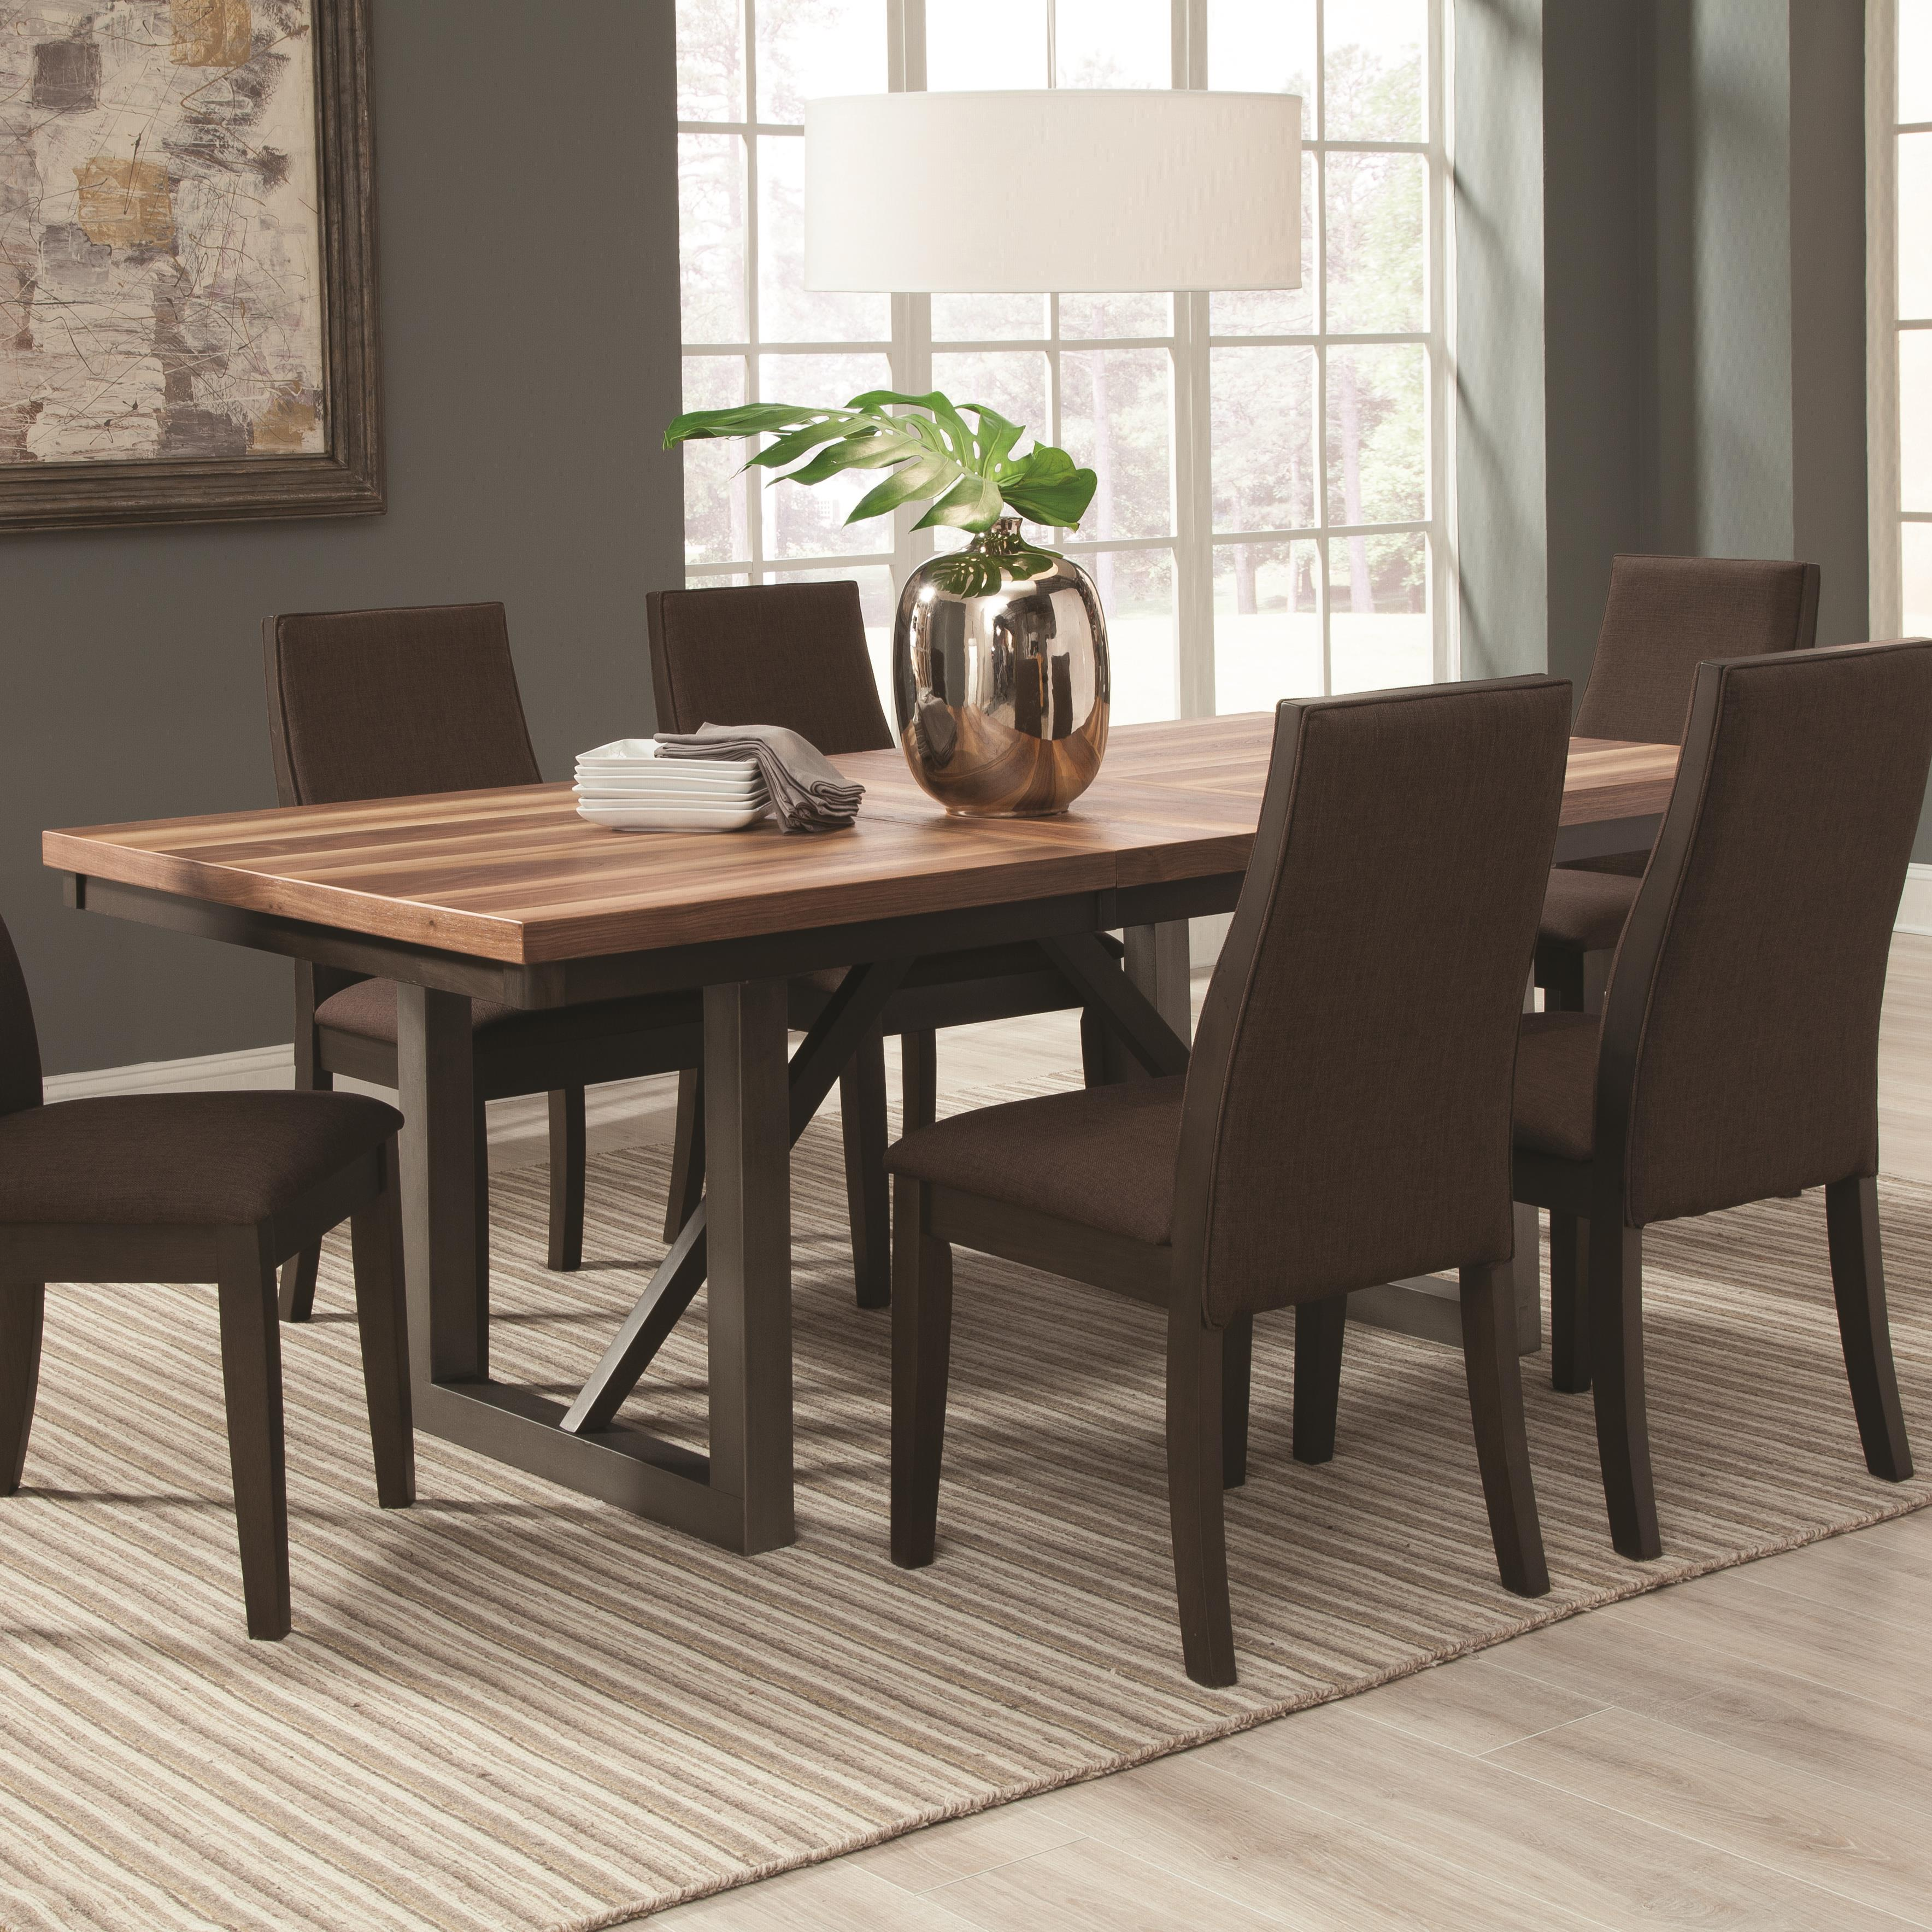 Coaster Spring Creek 106581 Dining Table with